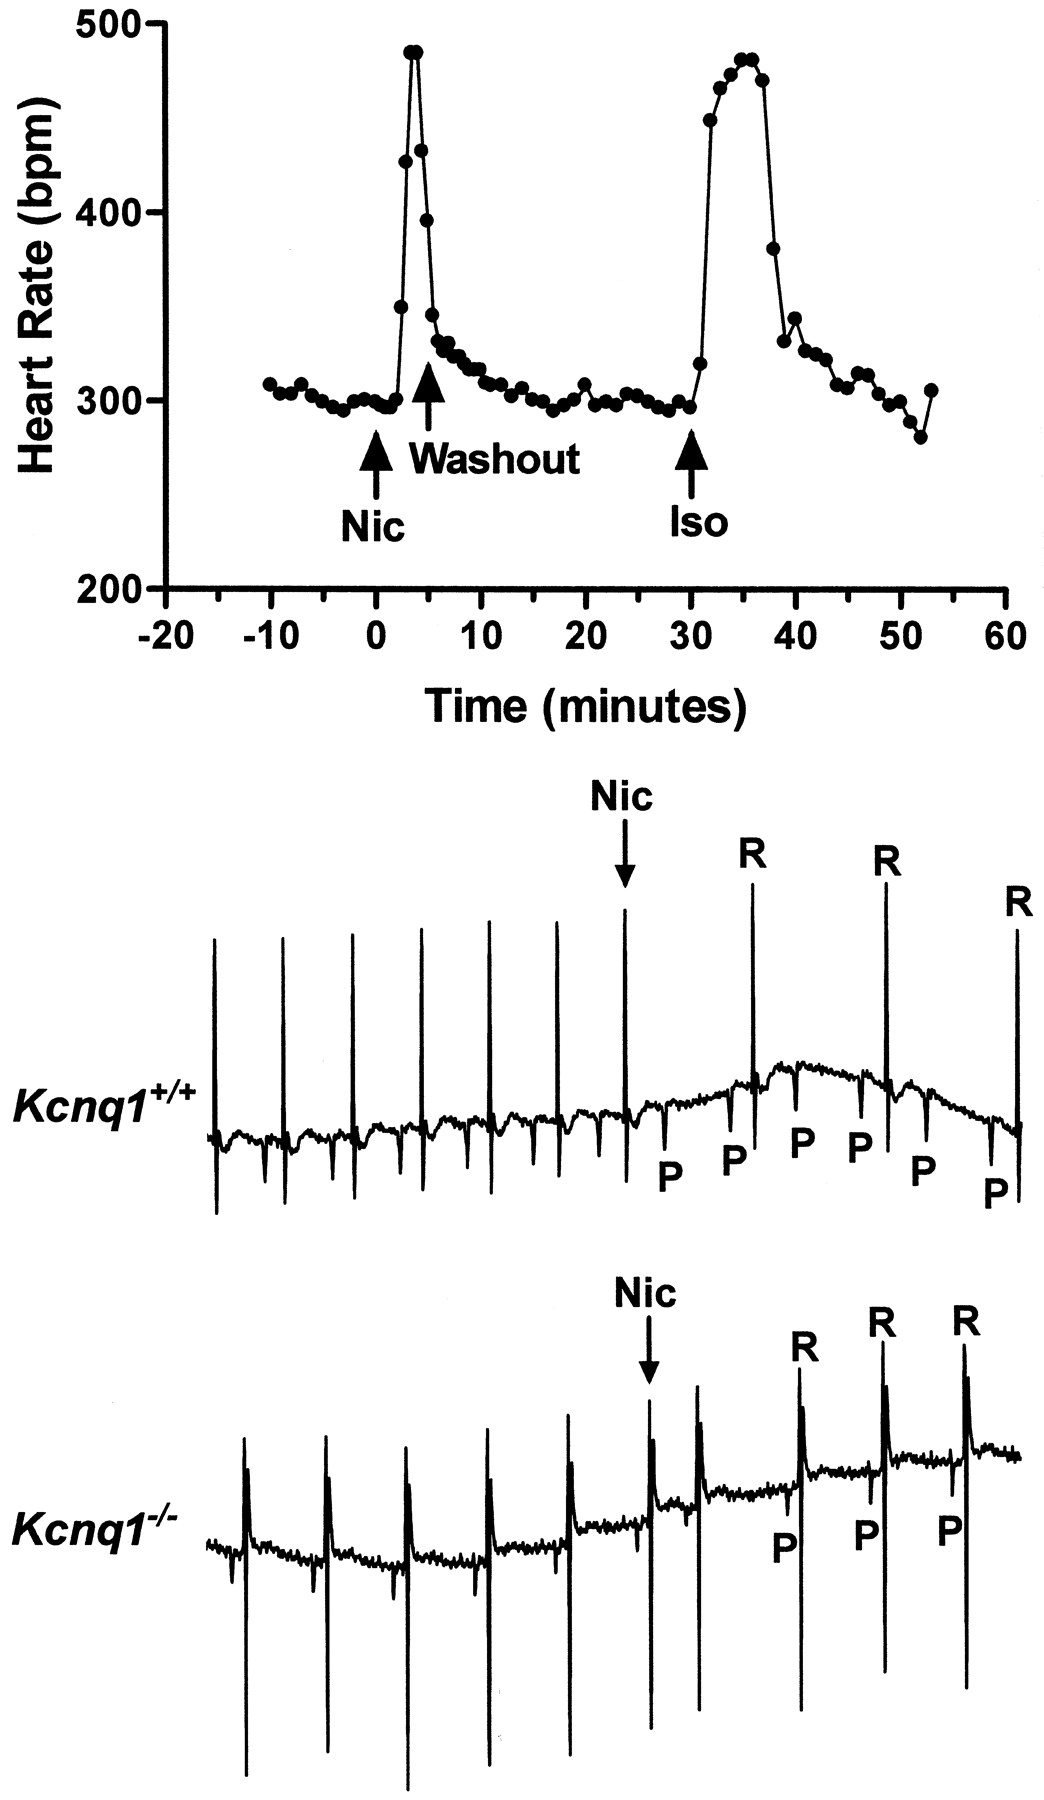 Nicotine Induces a Long QT Phenotype in Kcnq1-Deficient